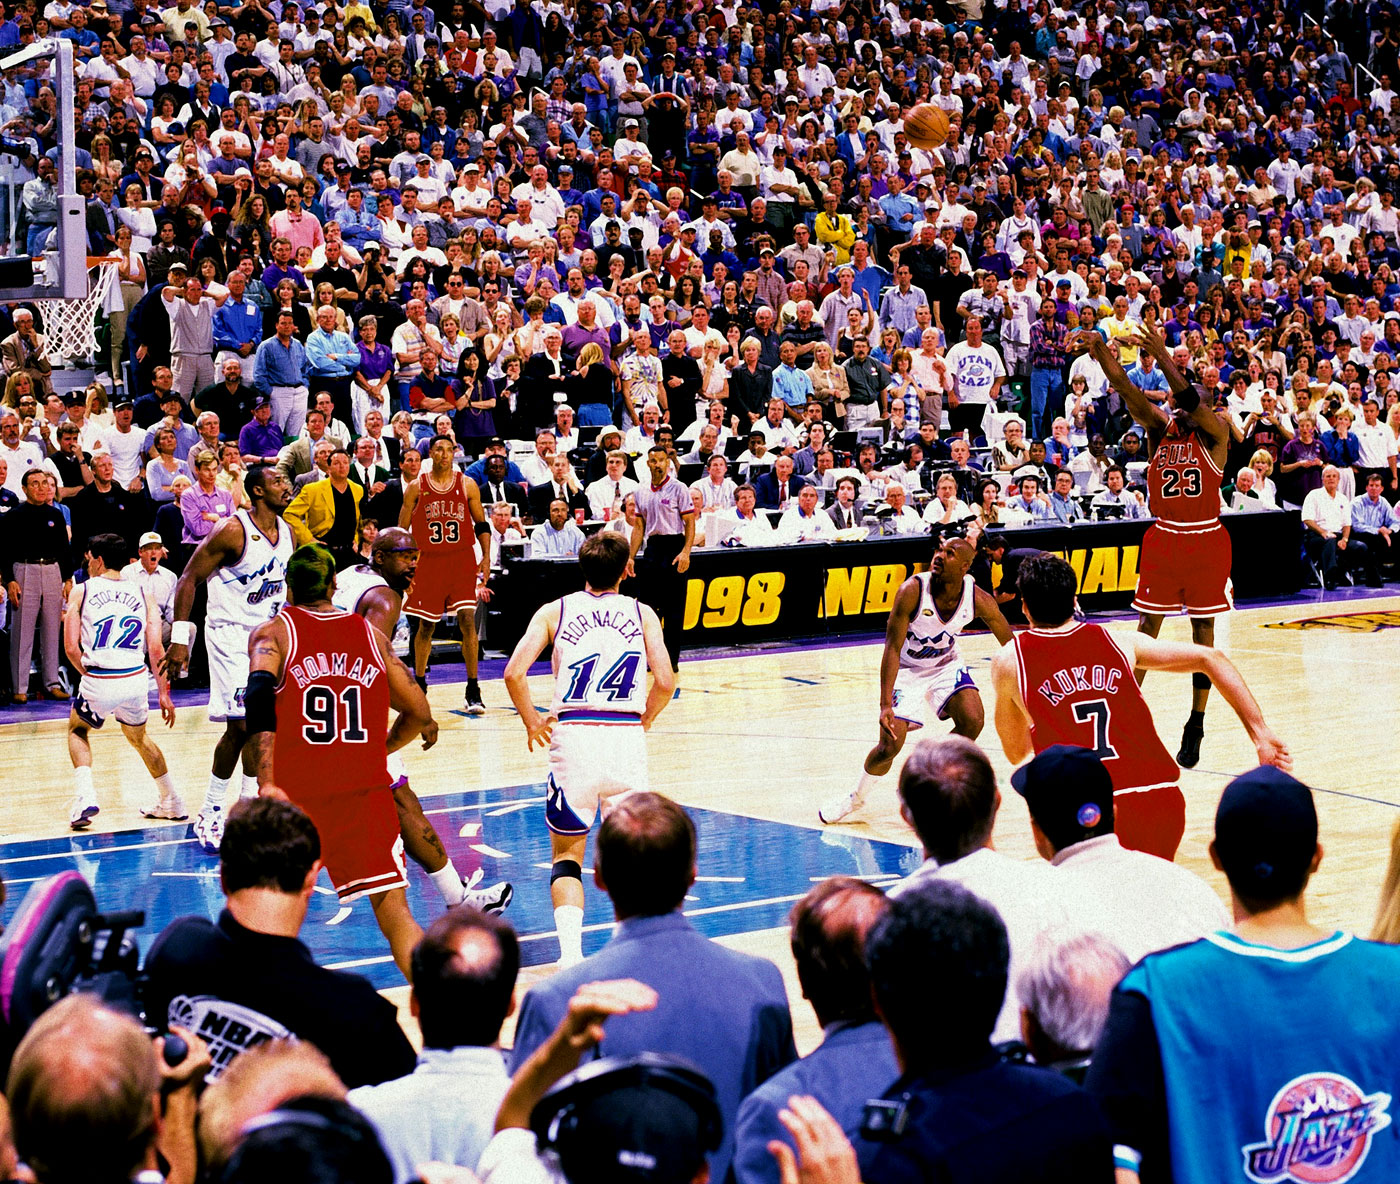 Last shot: with ten seconds left on the clock, Michael Jordan nails the 20-footer to beat Utah Jazz 87-86 in 1998*